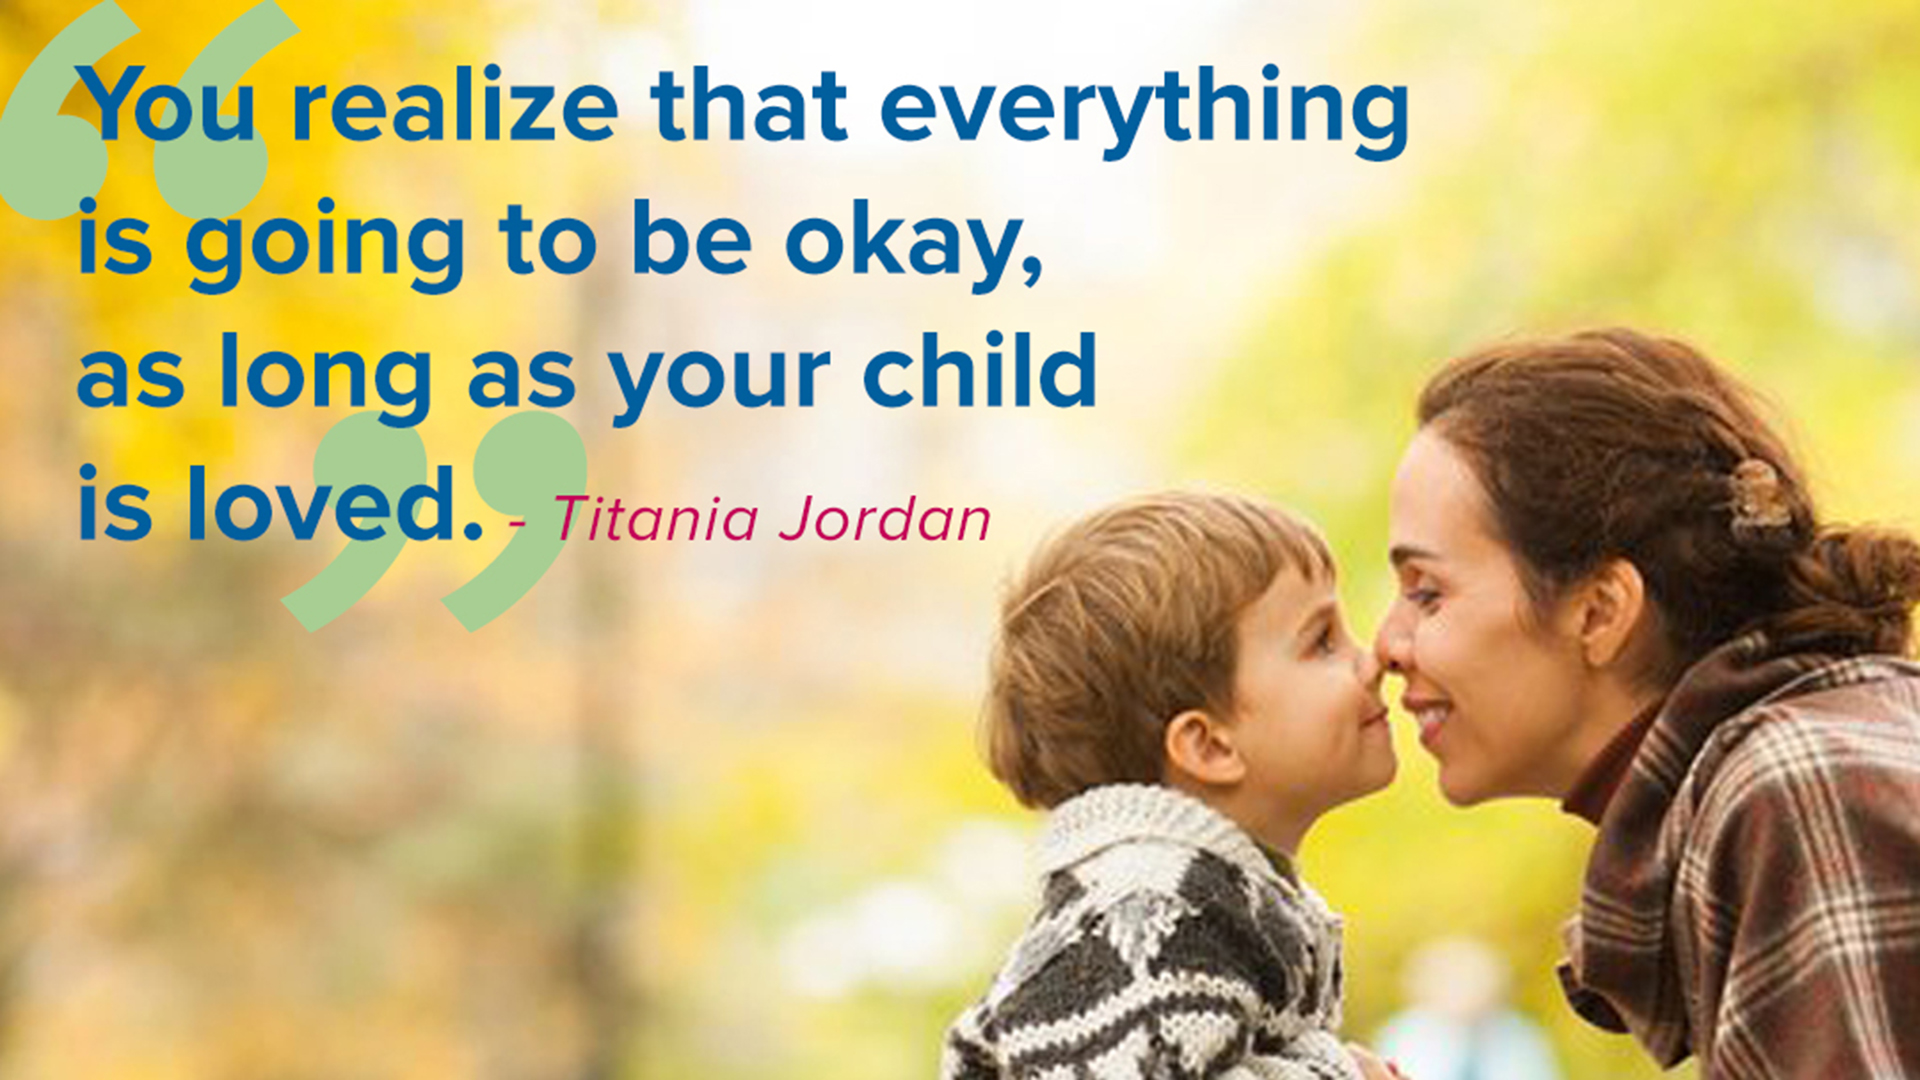 Love at first sight 6 timeless quotes about parenting for Mother s Day TODAY